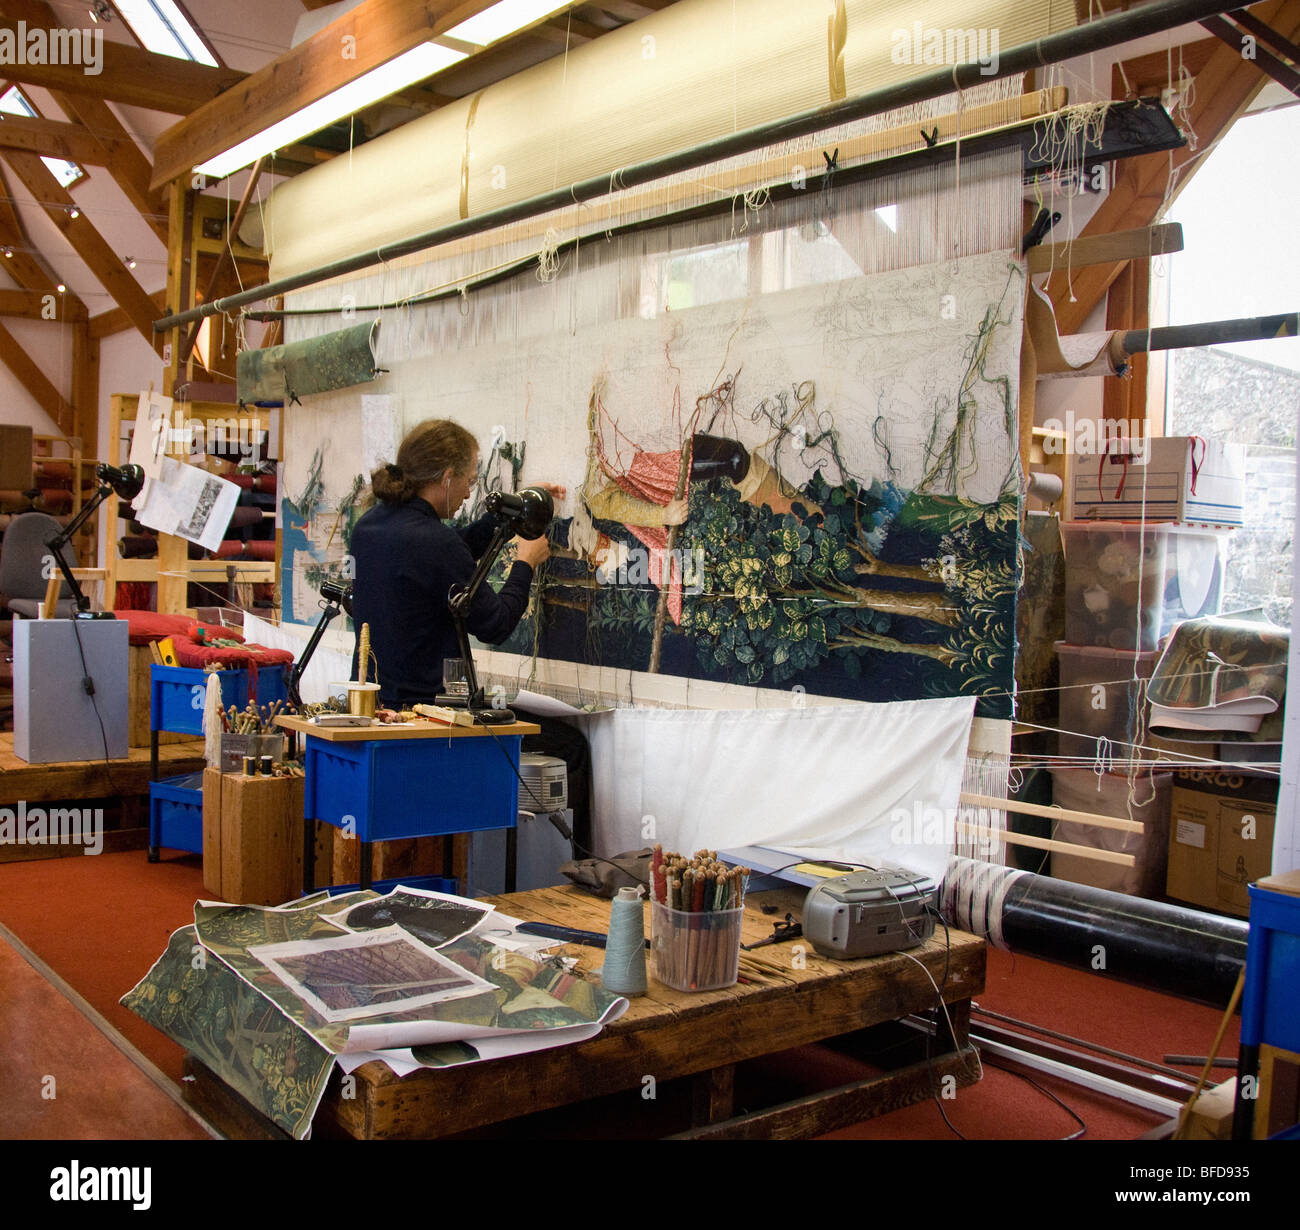 Weaver working on tapestry in the Tapestry Studio at Stirling Castle. - Stock Image